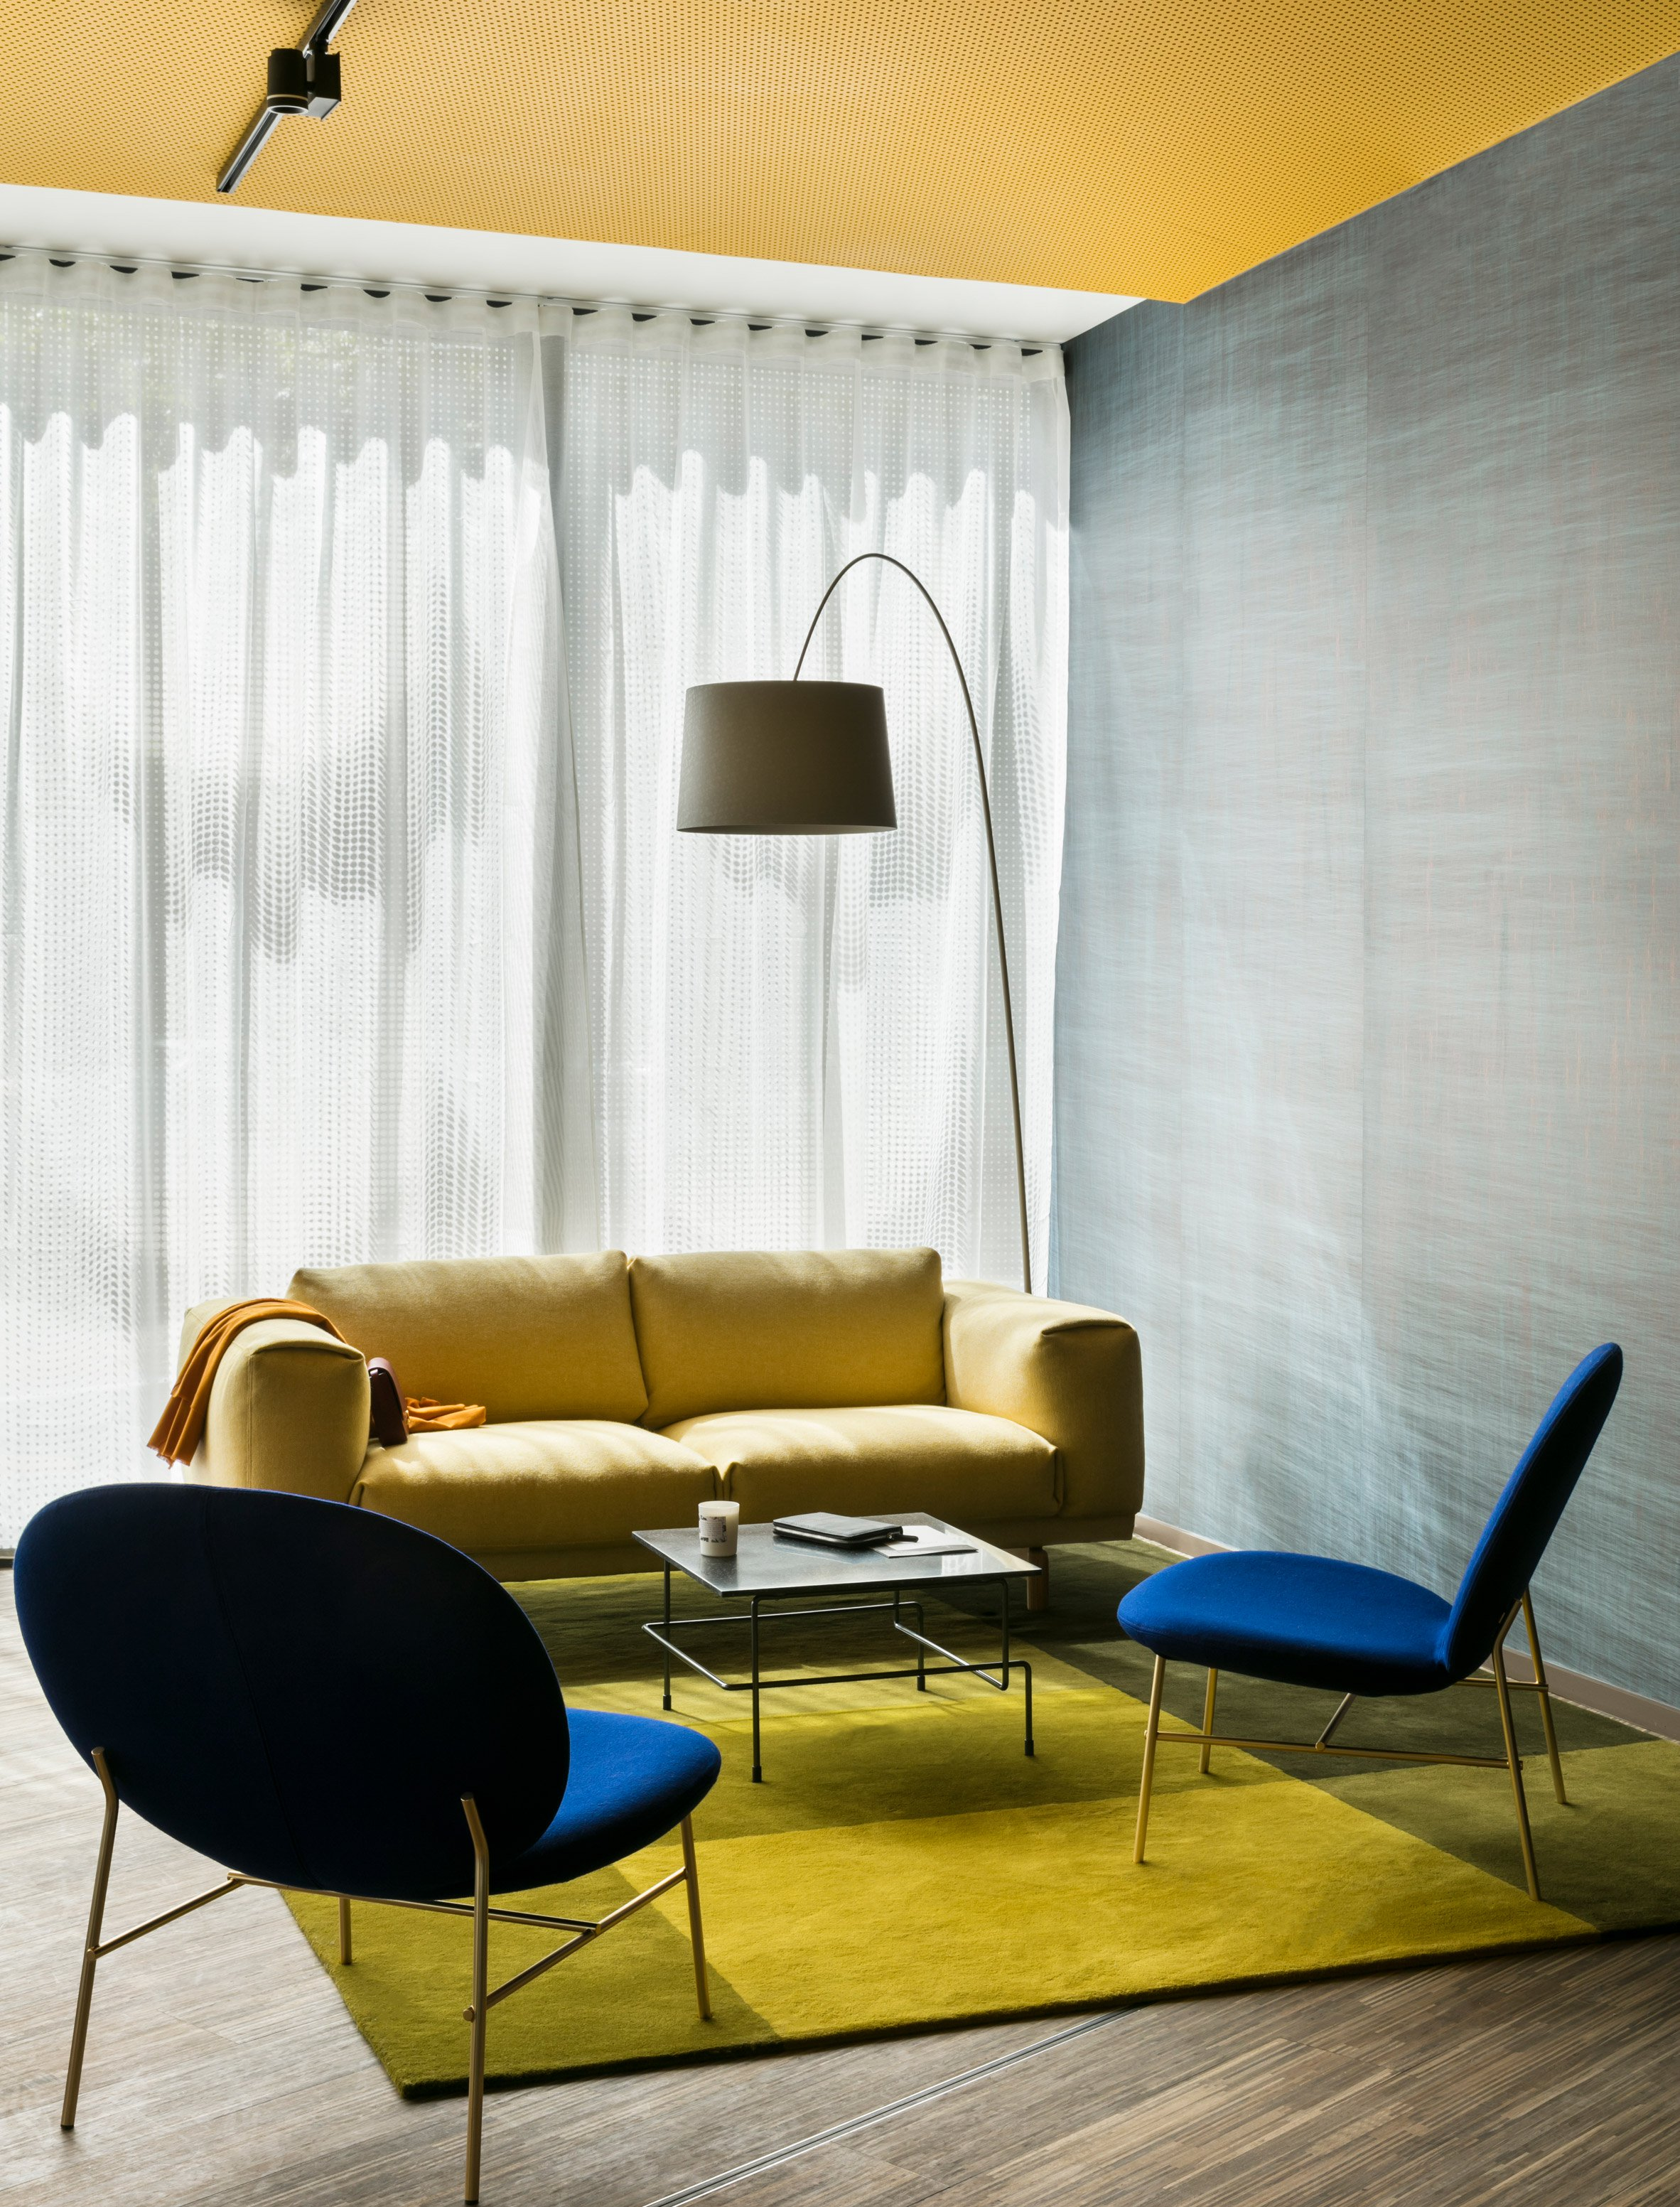 Colorful Okko Hotel Features Stunning Mid-Century Lighting Designs 2 mid-century lighting Colorful Okko Hotel Features Stunning Mid-Century Lighting Designs Colorful Okko Hotel Features Stunning Mid Century Lighting Designs 2